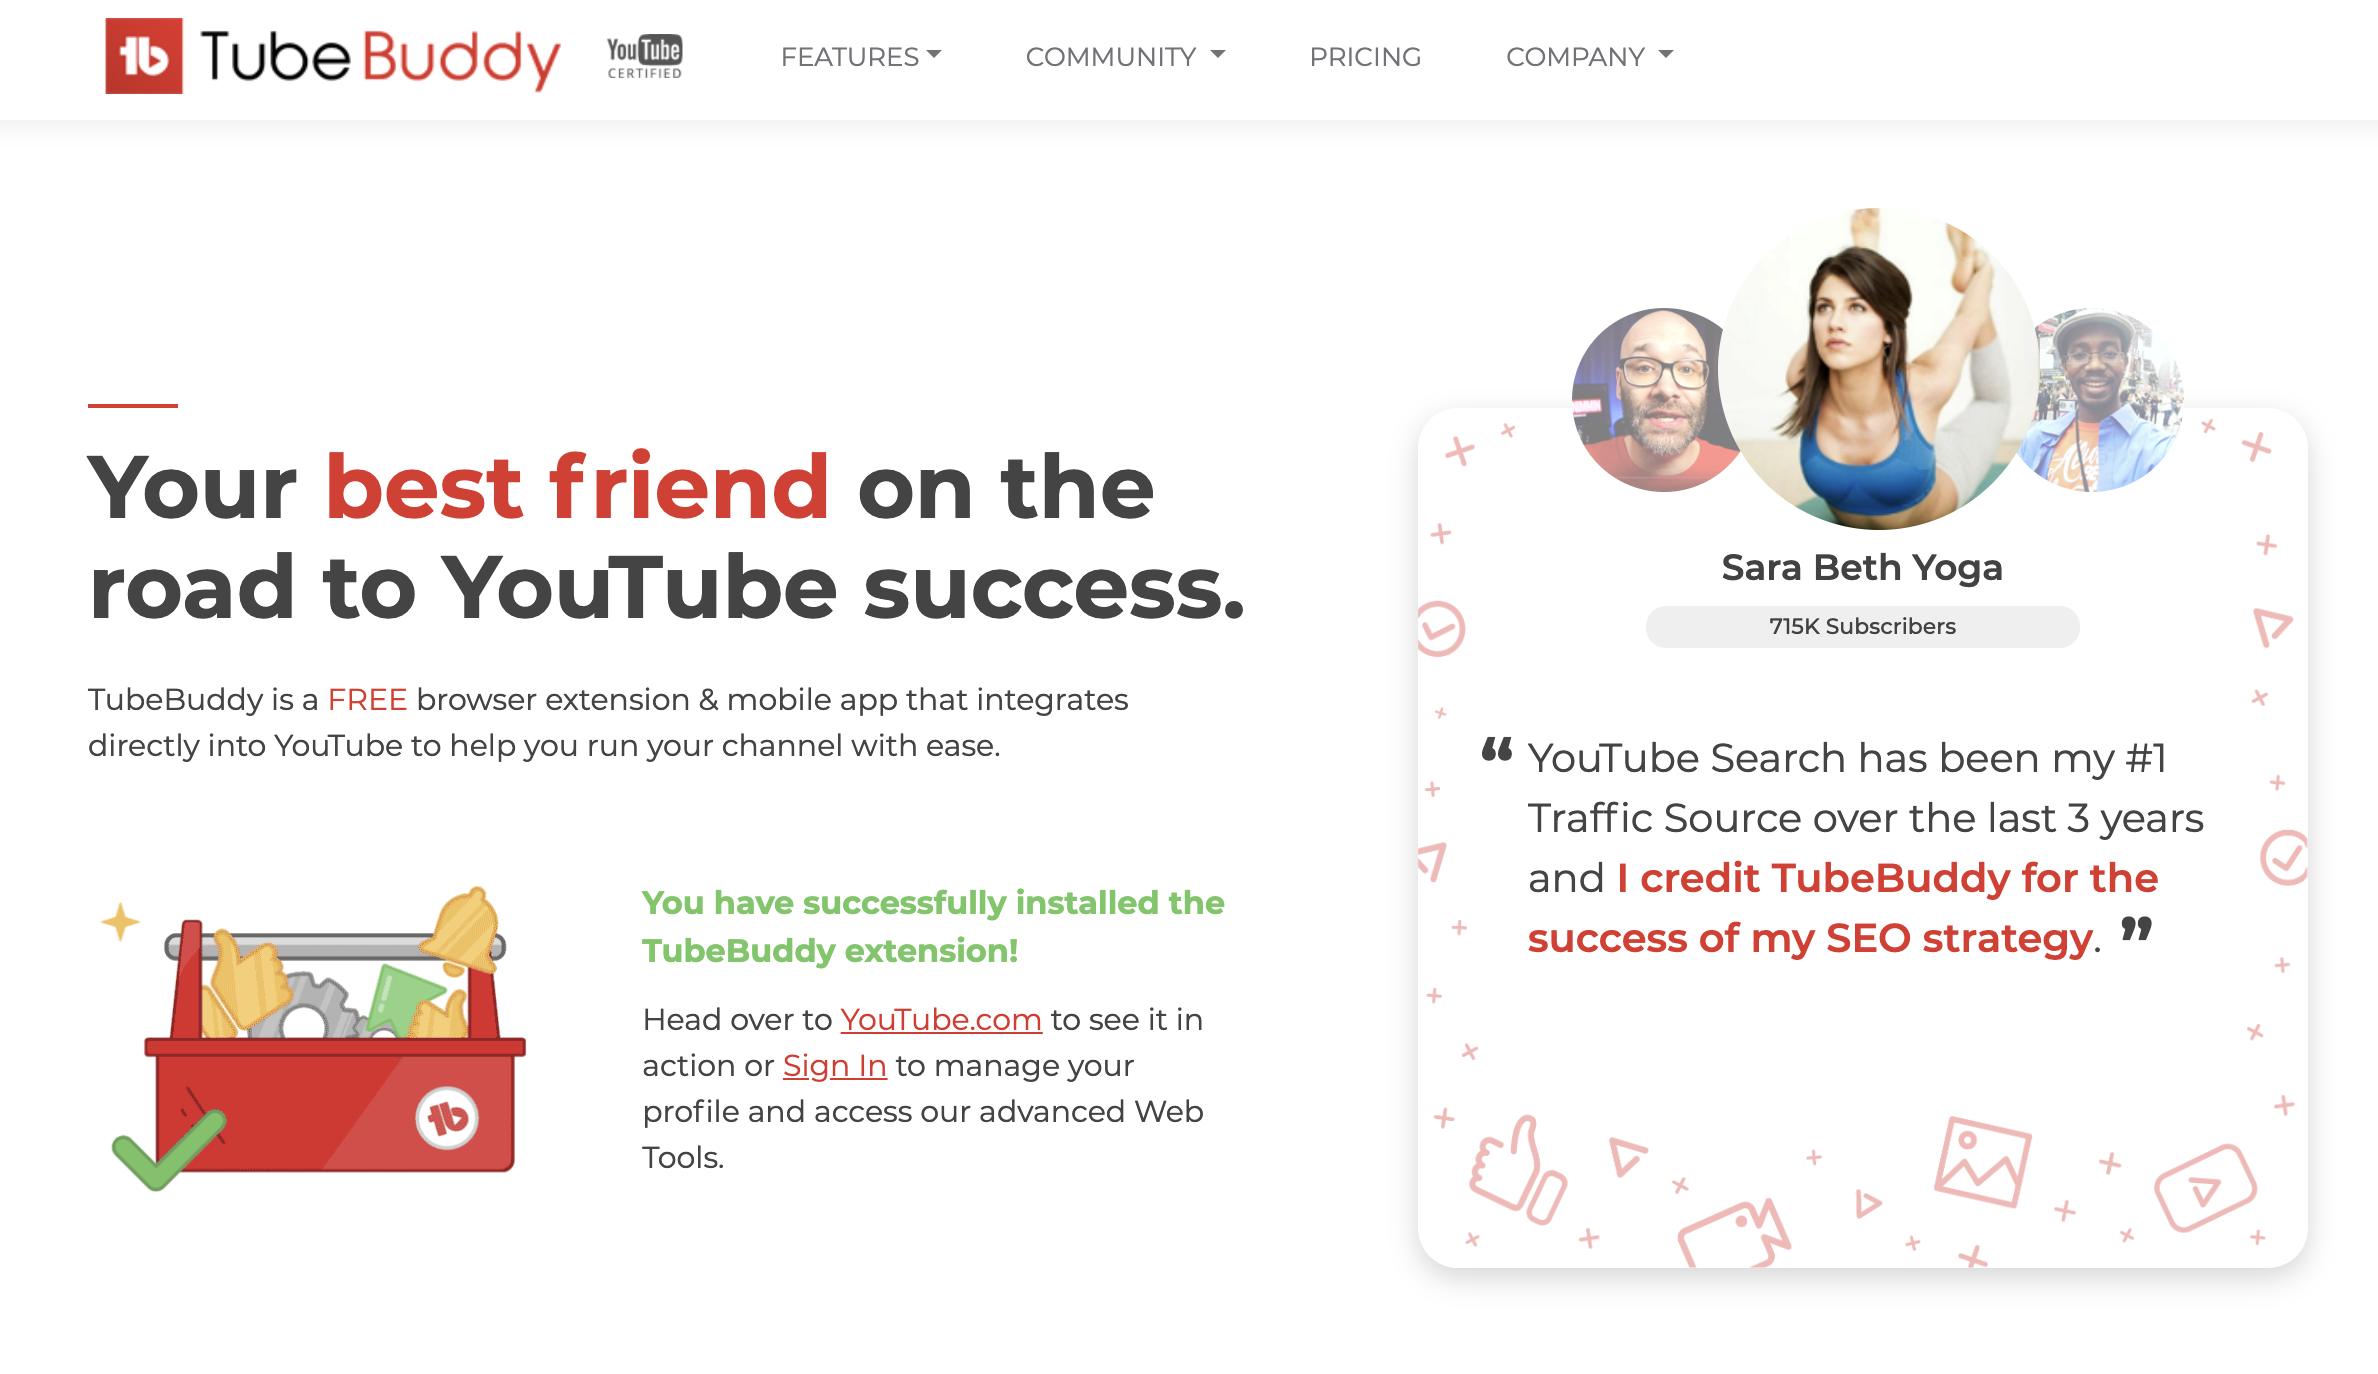 tubebuddy overview